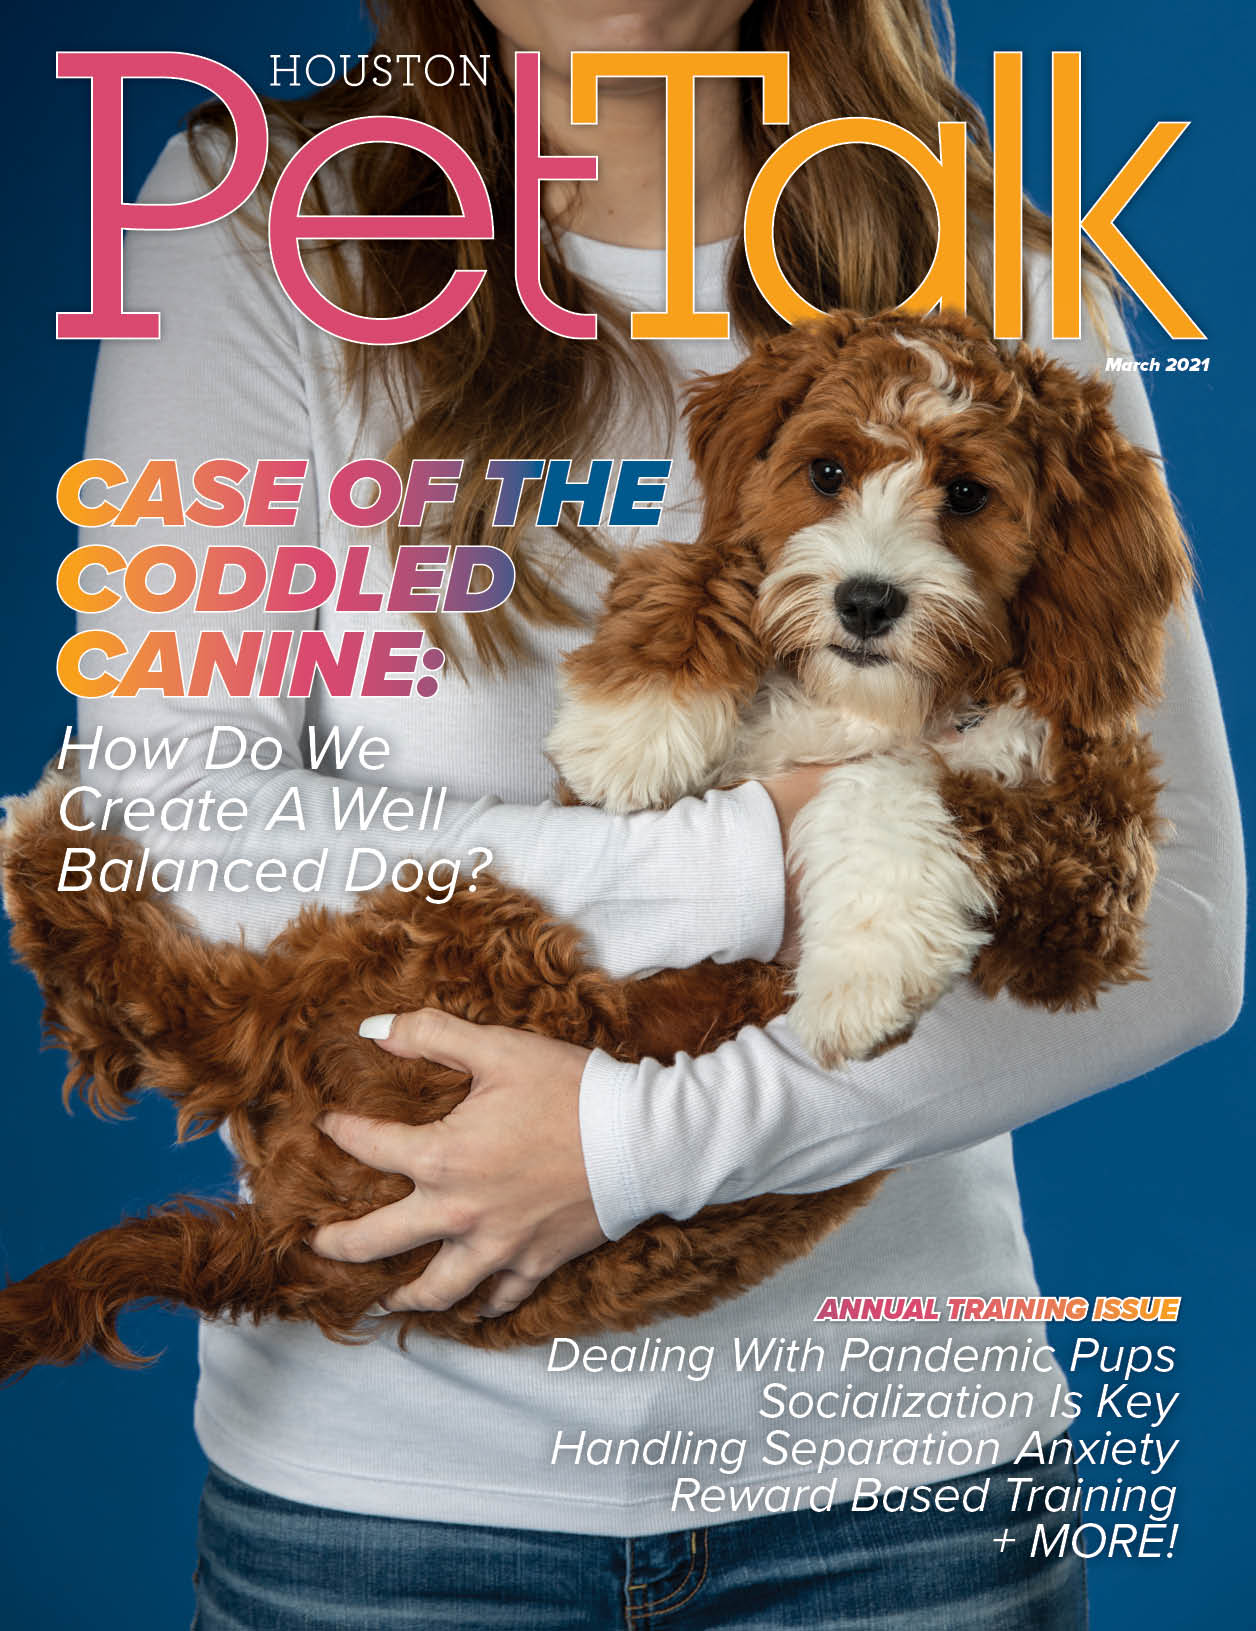 March 2021 Digital Issue of Houston PetTalk